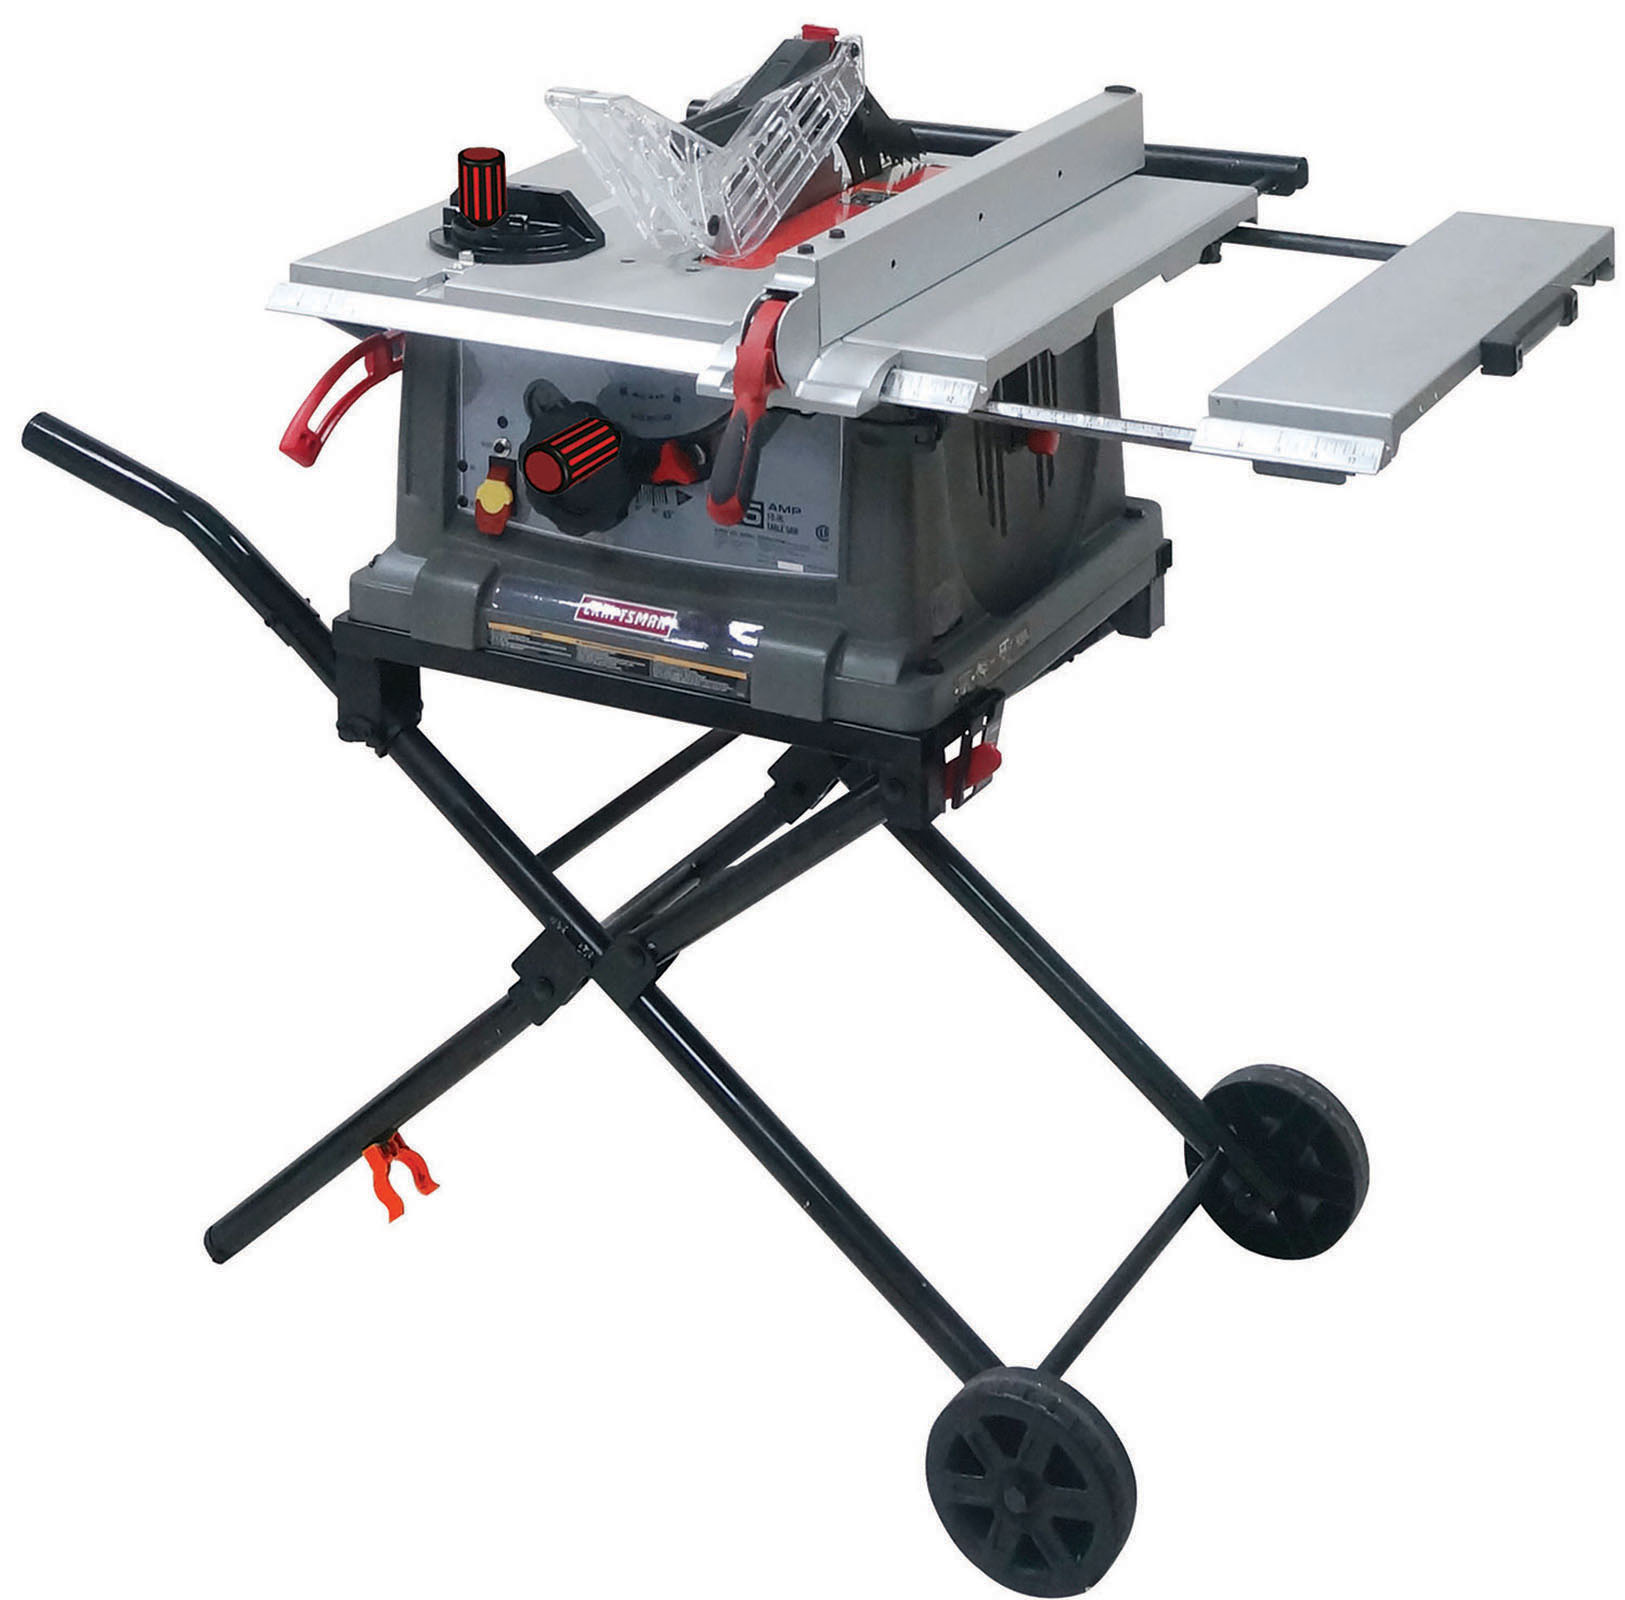 hight resolution of craftsman table saws craftsman table saw model 137 wiring diagram for craftsman table saw 137 248830